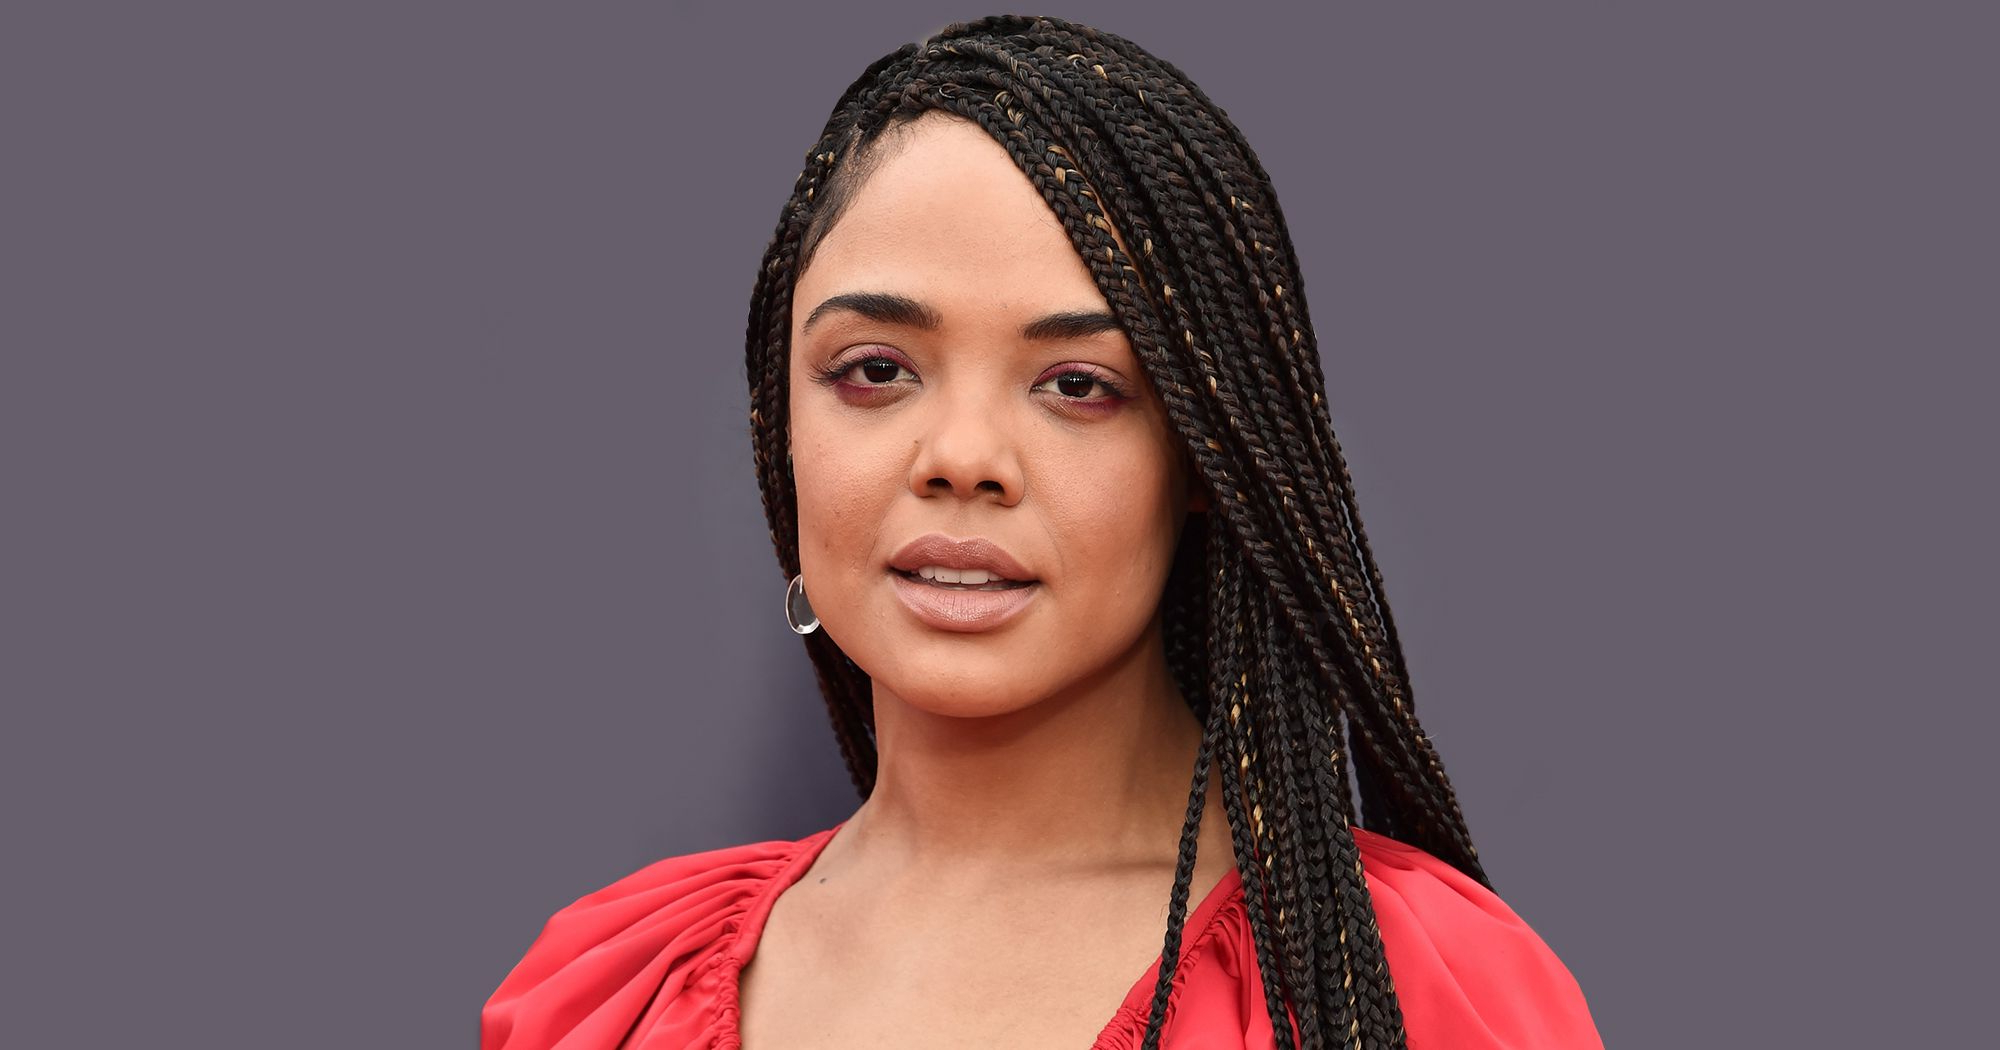 Box Braid Hairstyles We Love For Your New 2019 Look With Most Recent Short And Chic Bob Braid Hairstyles (View 7 of 20)